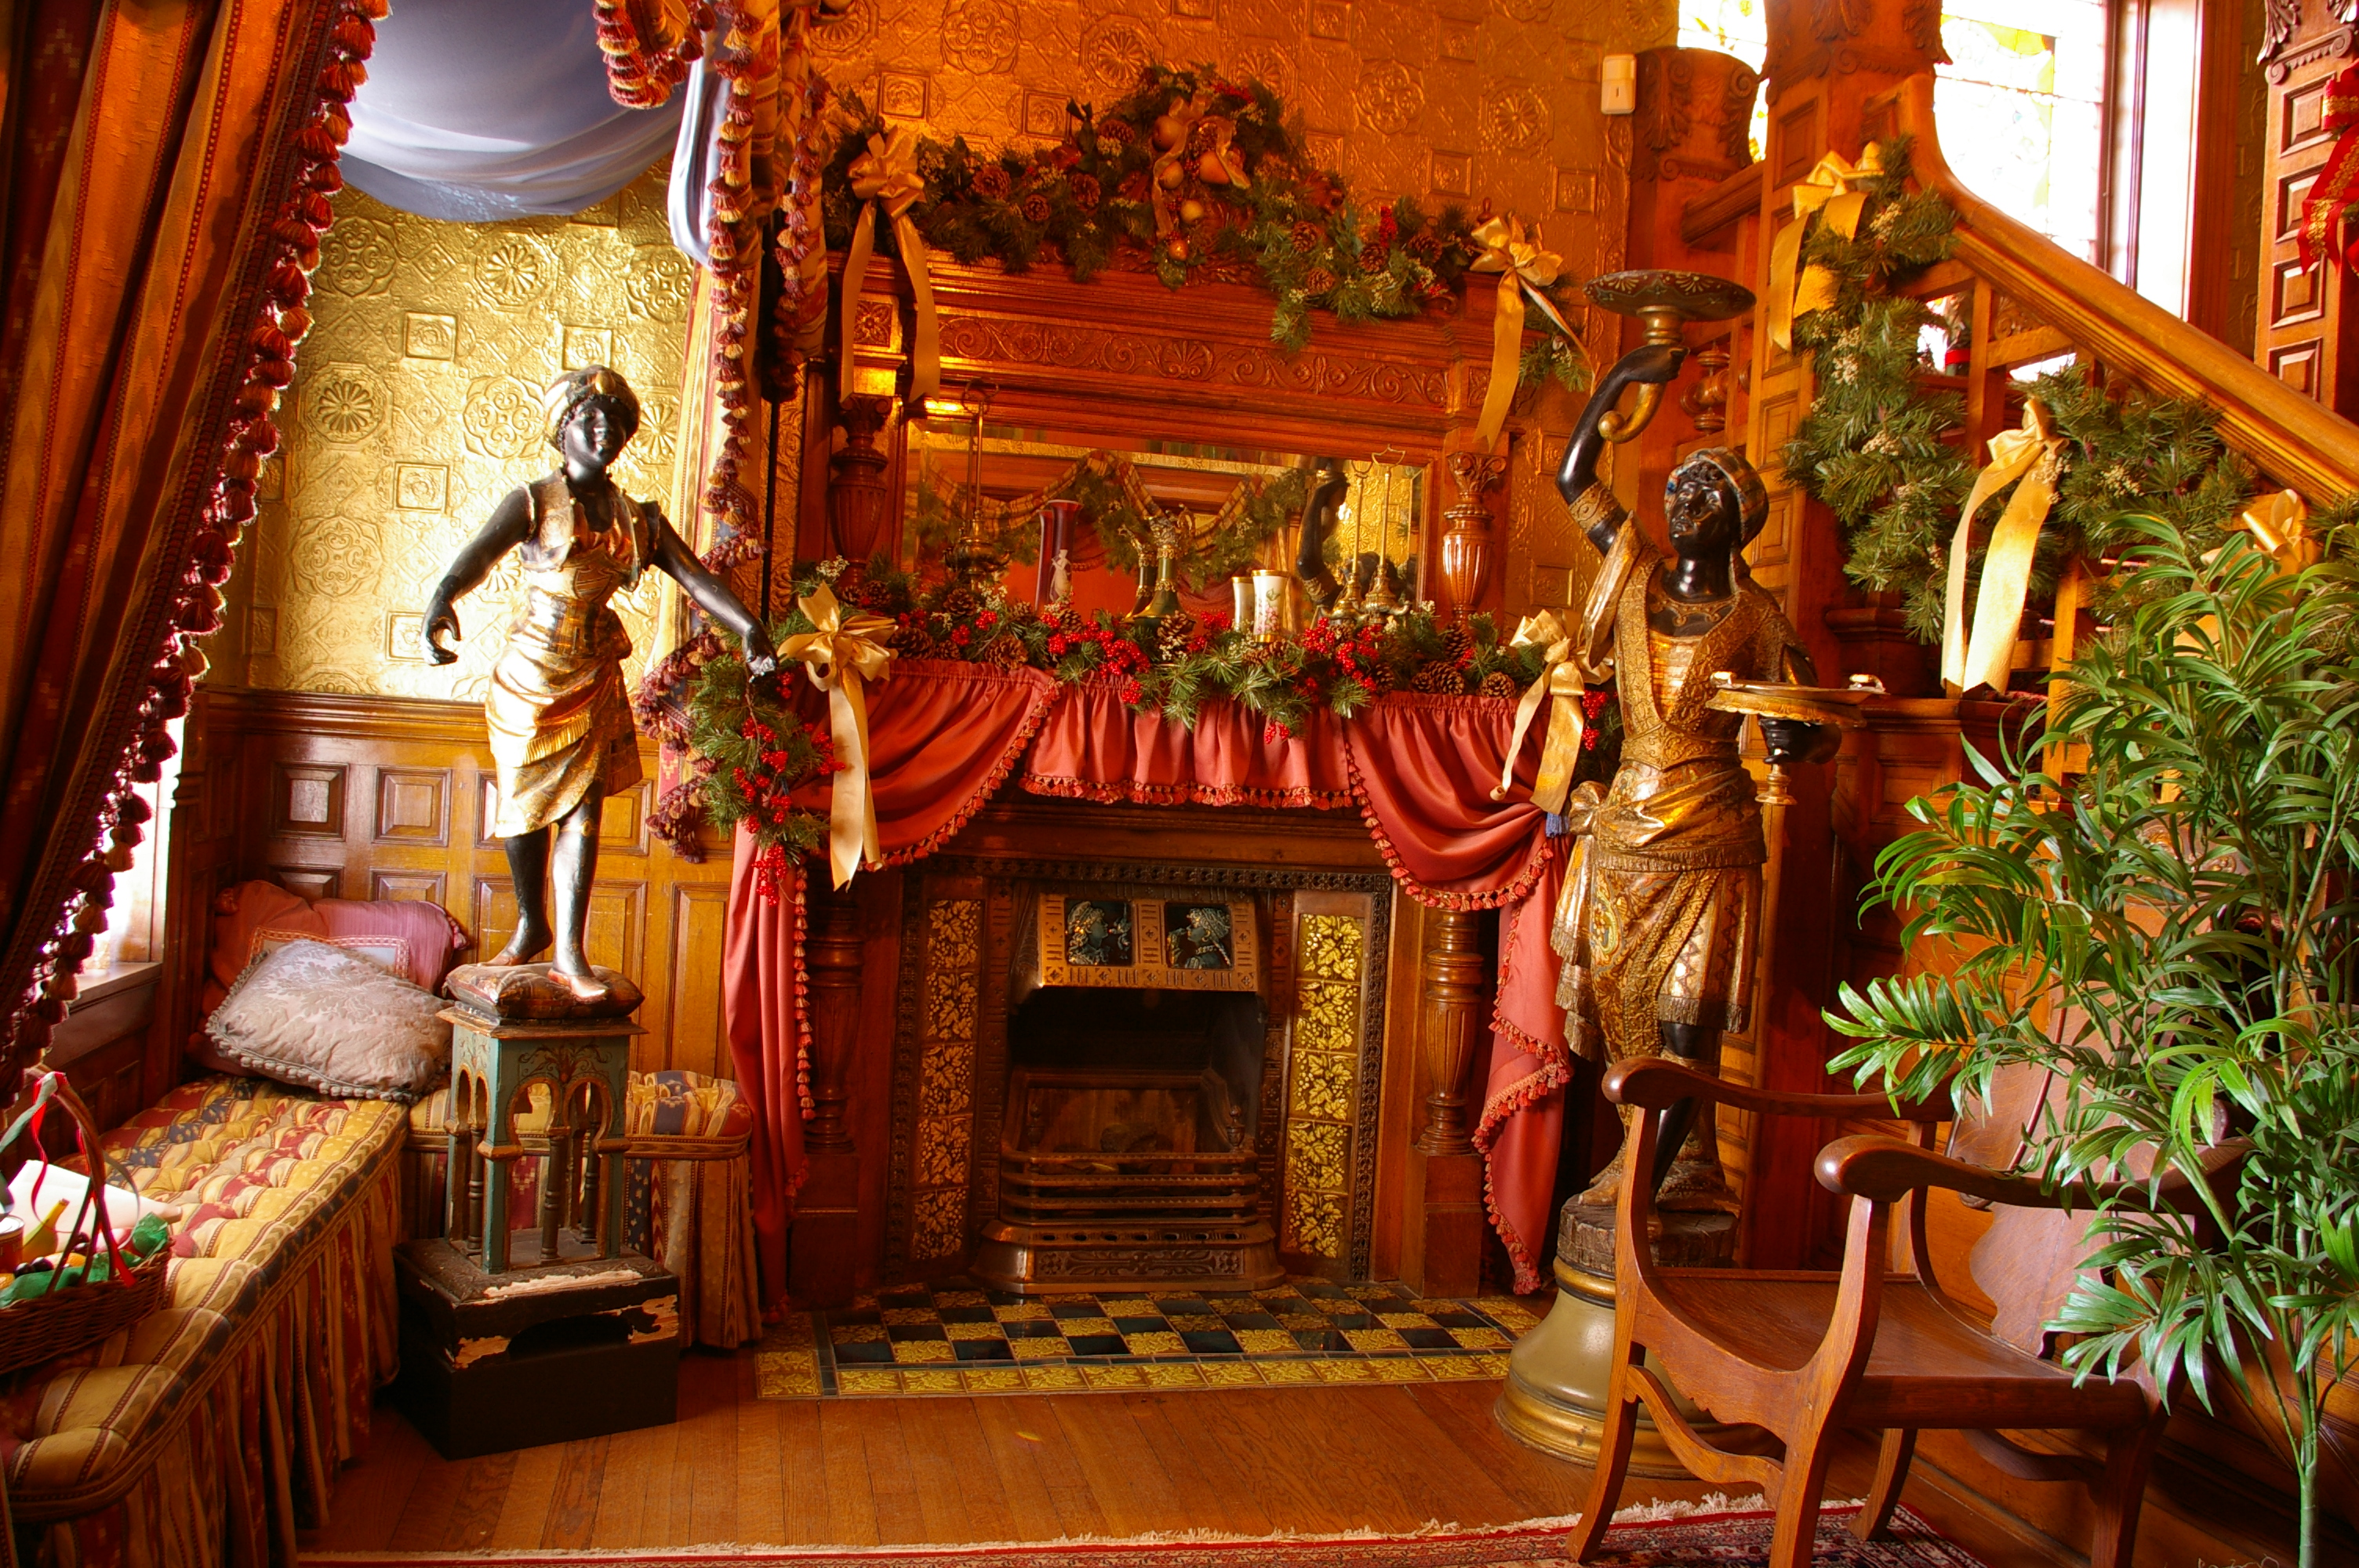 Christmas at the molly brown house museum molly brown house museum - Decorated houses ...